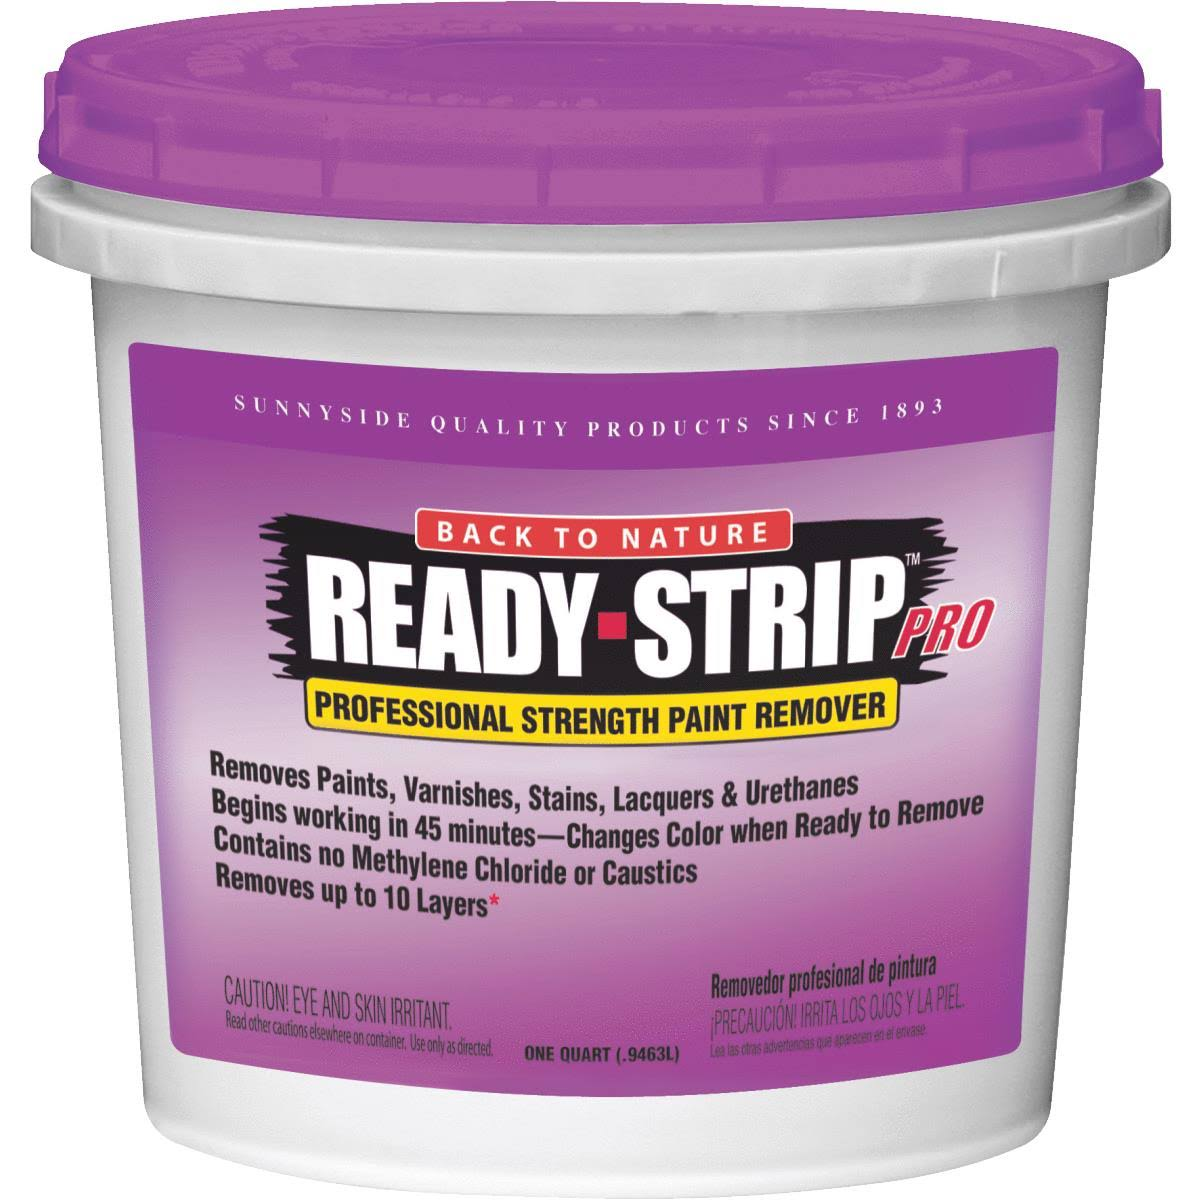 Sunnyside Ready Strip Professional Strength Paint Remover - 1qt